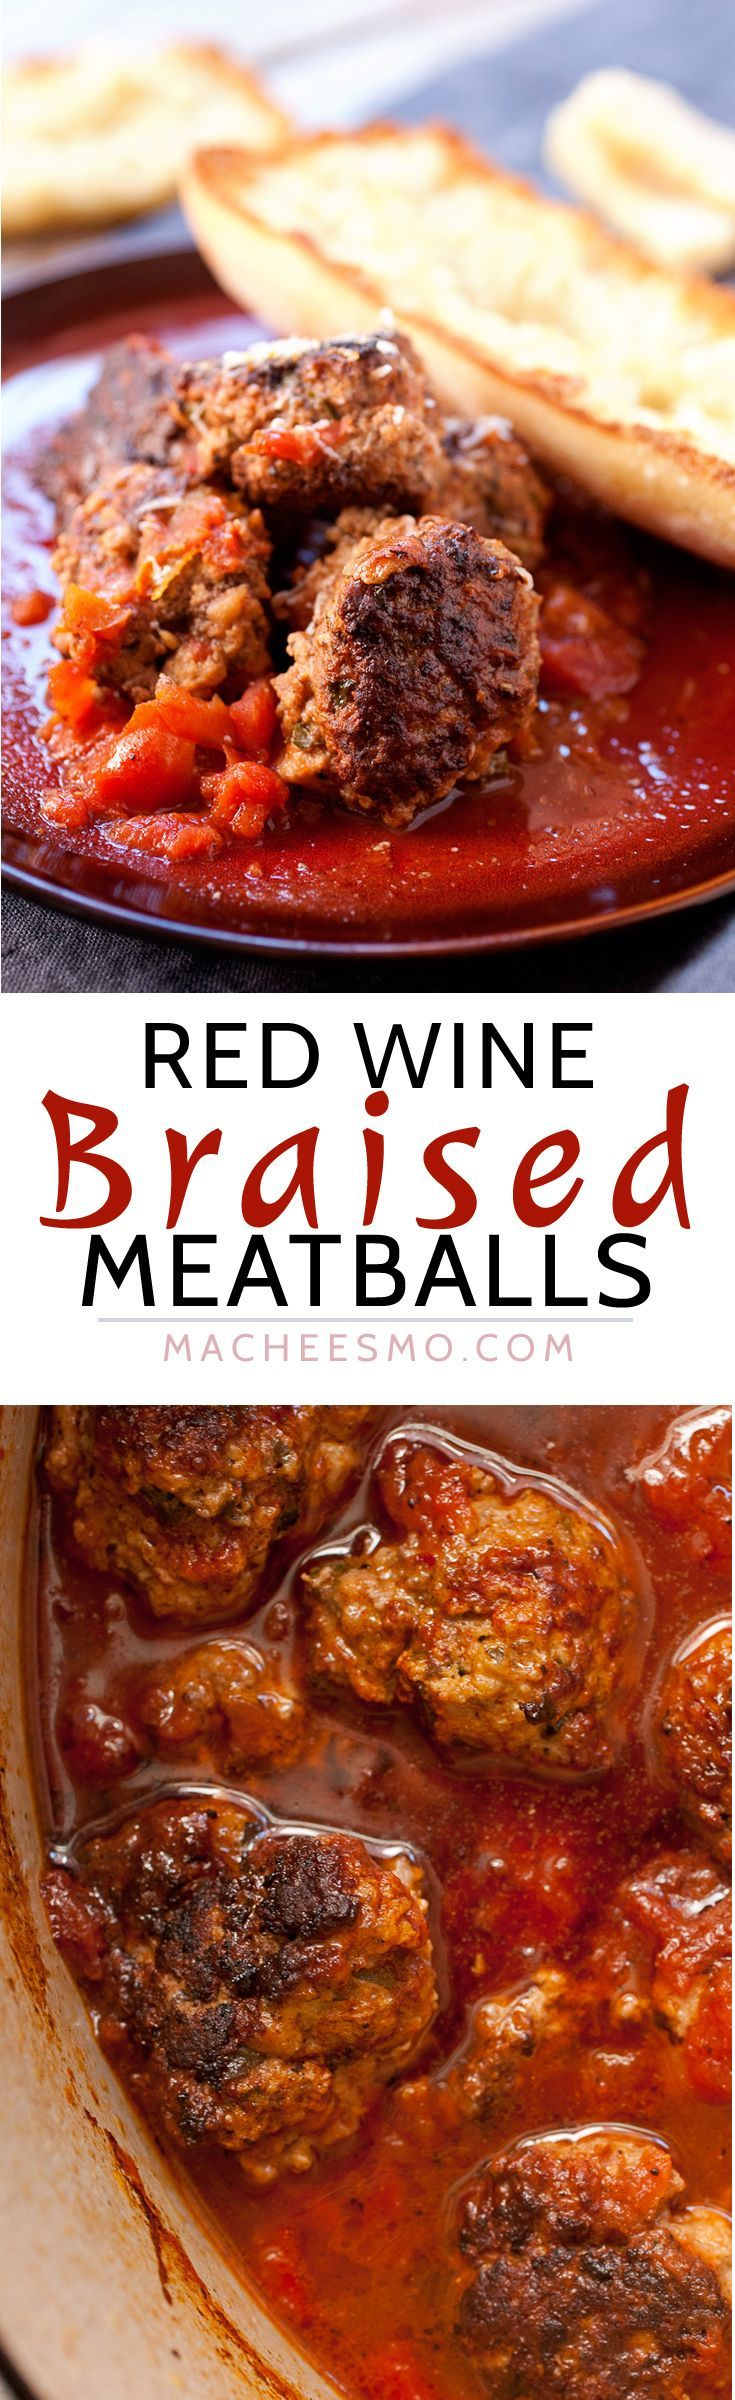 Hf ideas parrillas y asados - Easy Braised Meatballs These Delicious Homemade Braised Meatballs Are Slow Simmered In Tomatoes And